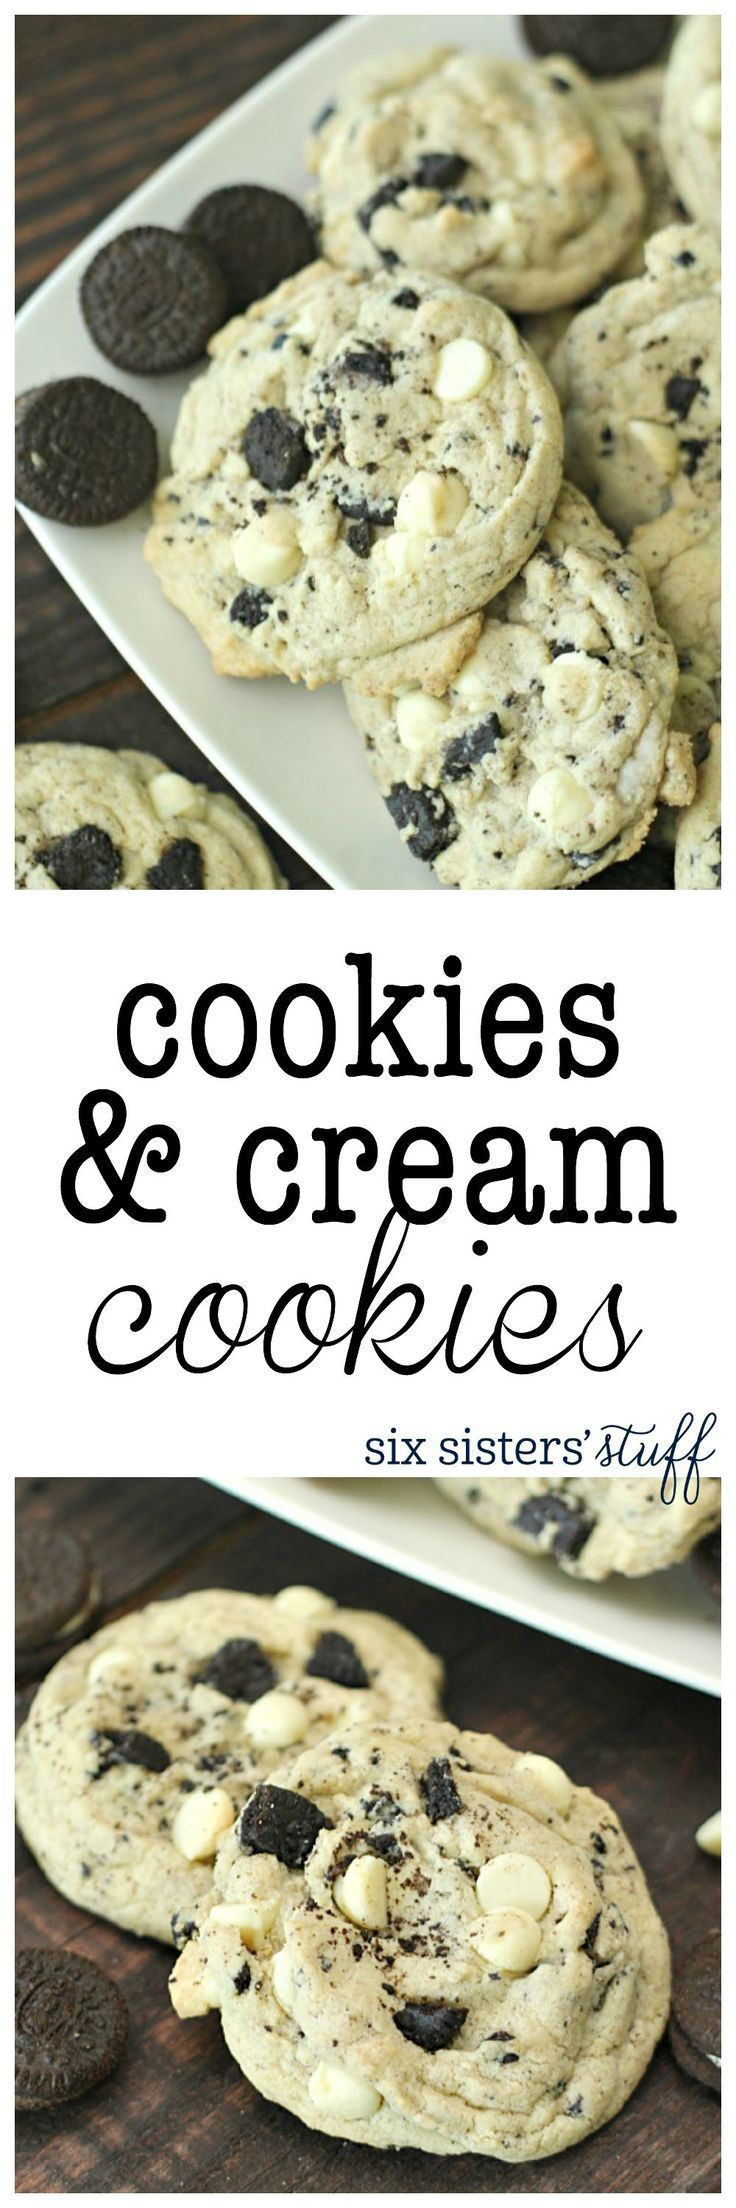 Cookies and Cream Cookies recipe from SixSistersStuff.com | These cookies are loaded with Oreo's and the secret ingredient is a box of cookies and cream pudding, making them so soft and full of amazin (Dessert Recipes)